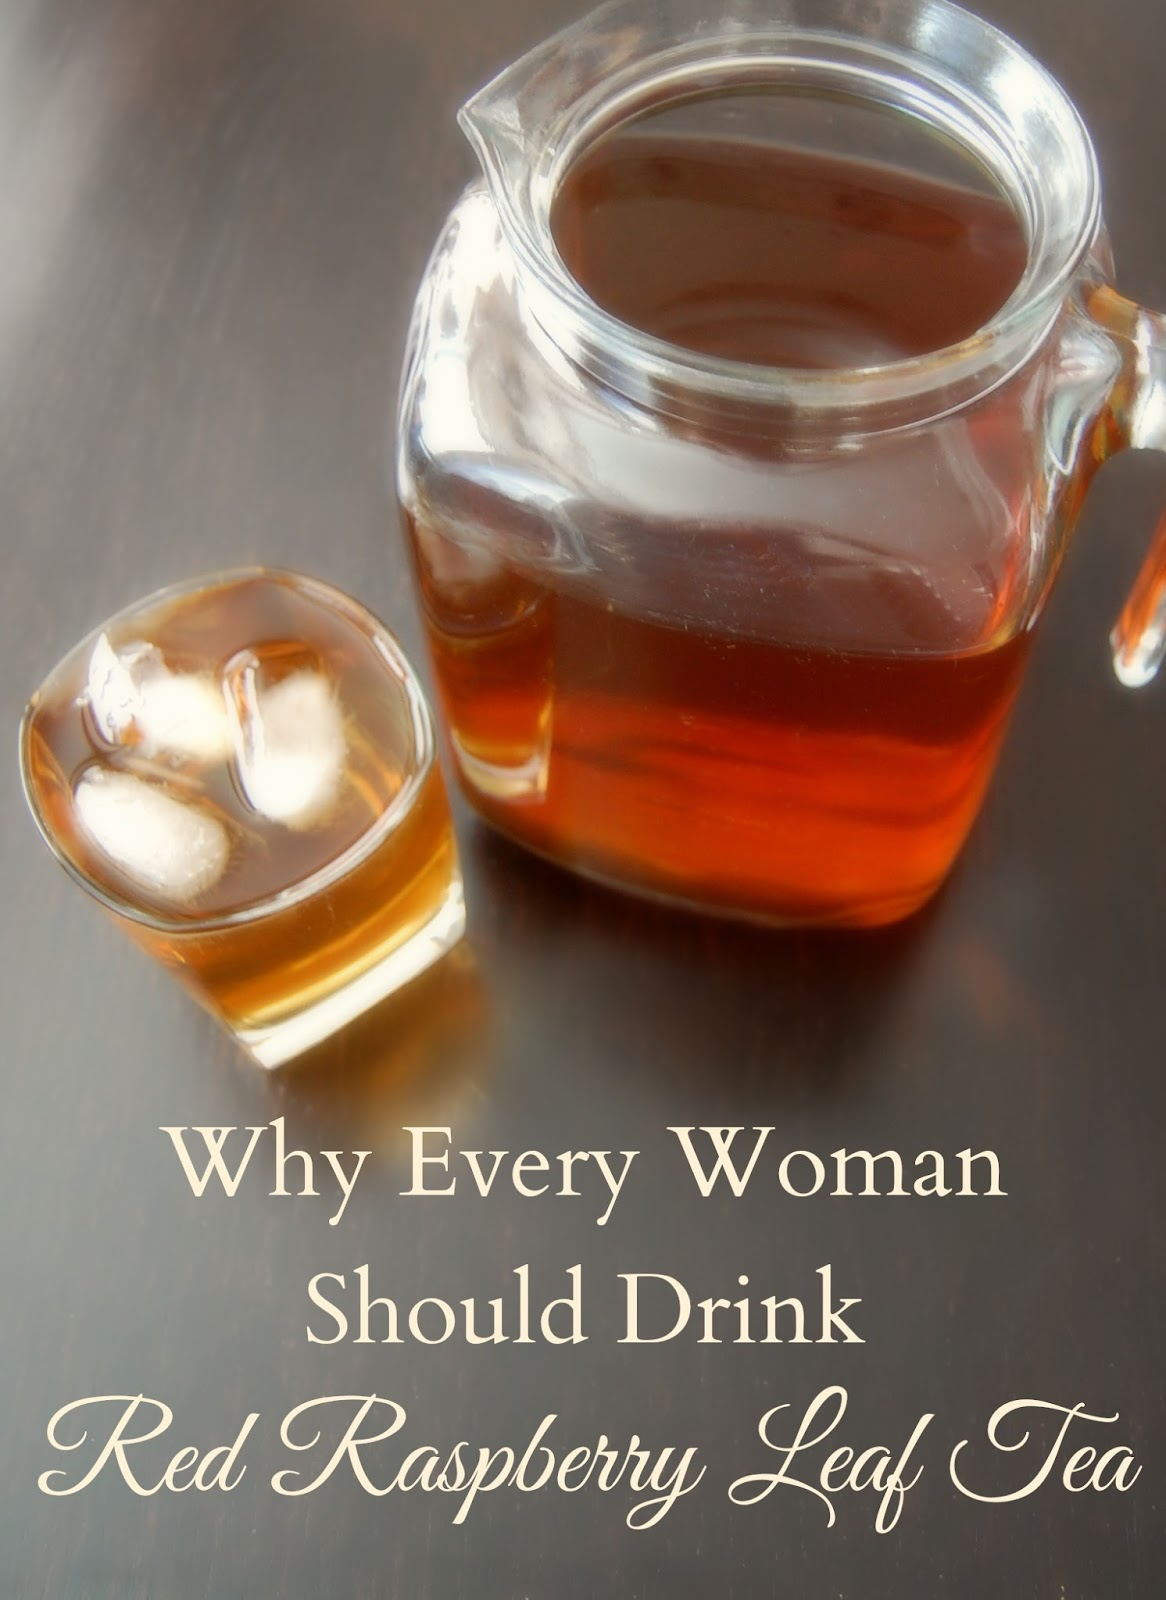 Why Every Woman Should Drink Red Raspberry Leaf